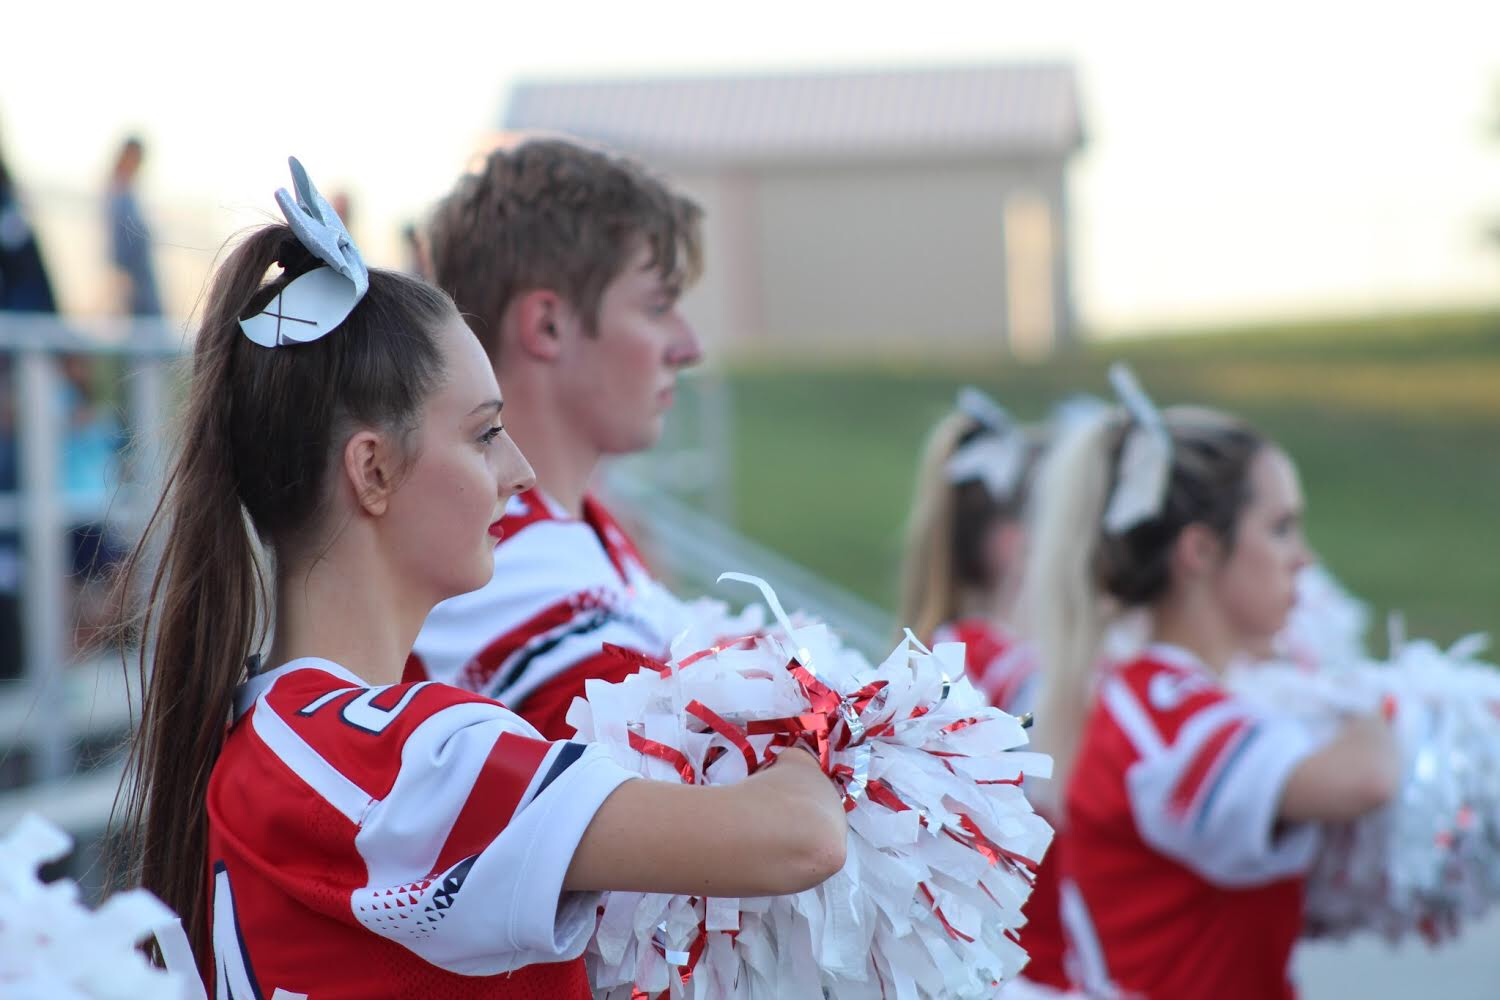 Ella Kiger stands at attention during the playing of the national anthem at the Homecoming football game.